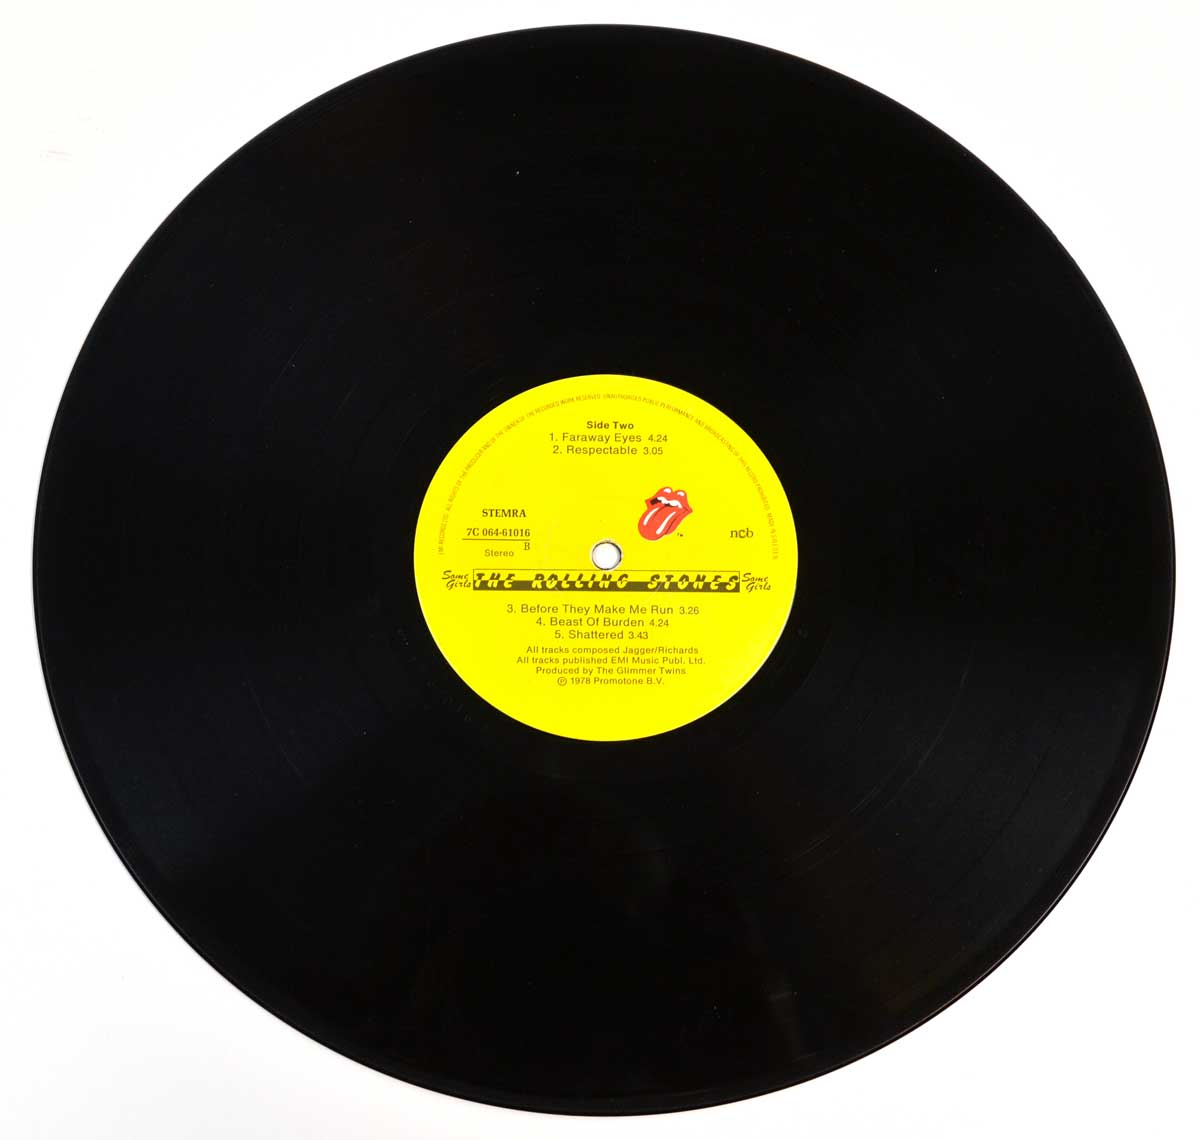 "Photo of ""ROLLING STONES - Some Girls (Sweden)"" 12"" LP Record - Side Two:"